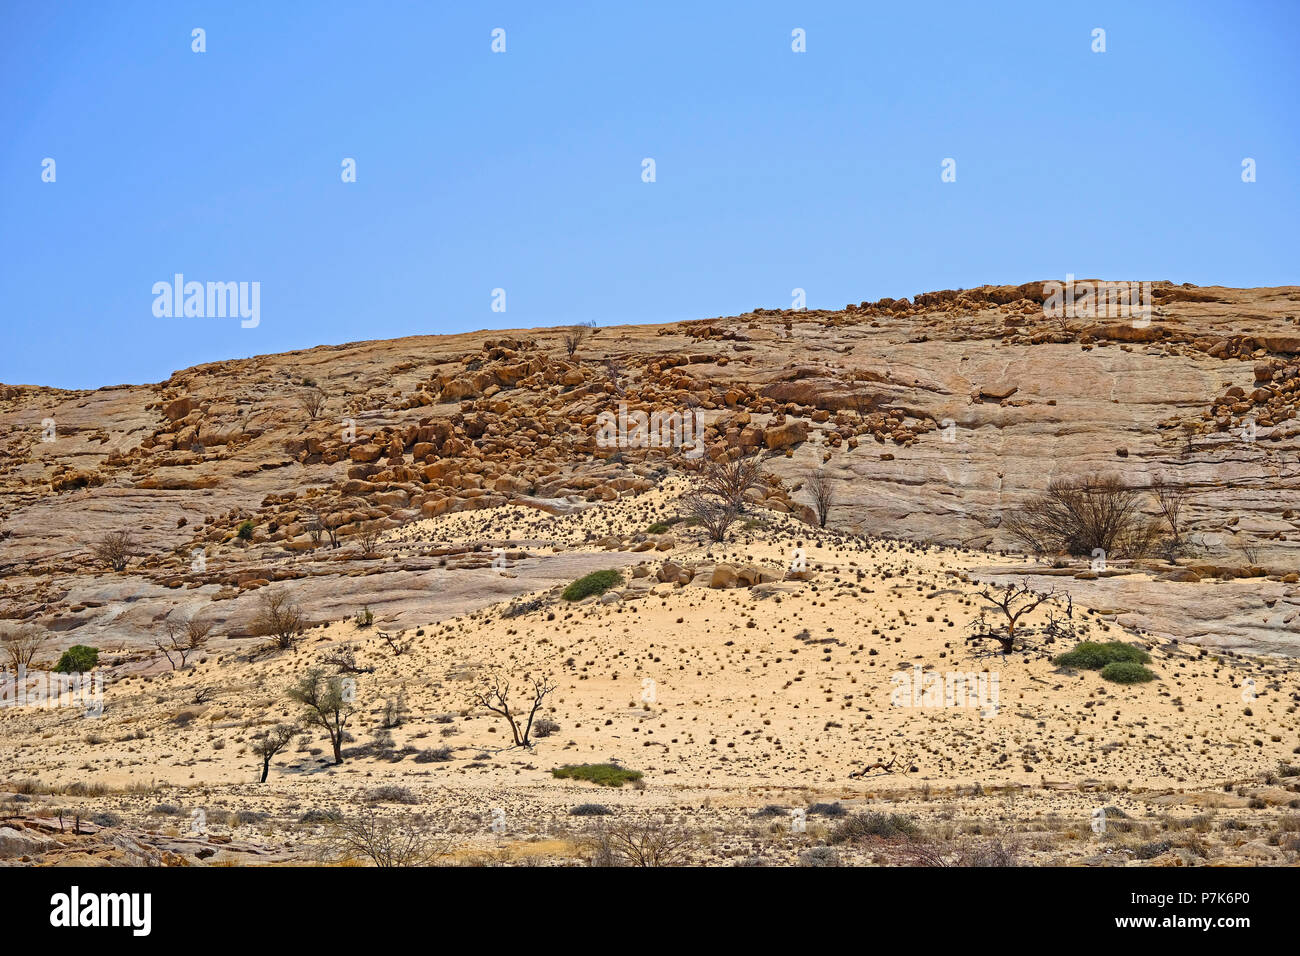 large monolith rocks with eroded granite balls, sand drifts and sparse vegetation in the Brandberg area in Namibia, Damaraland - Stock Image